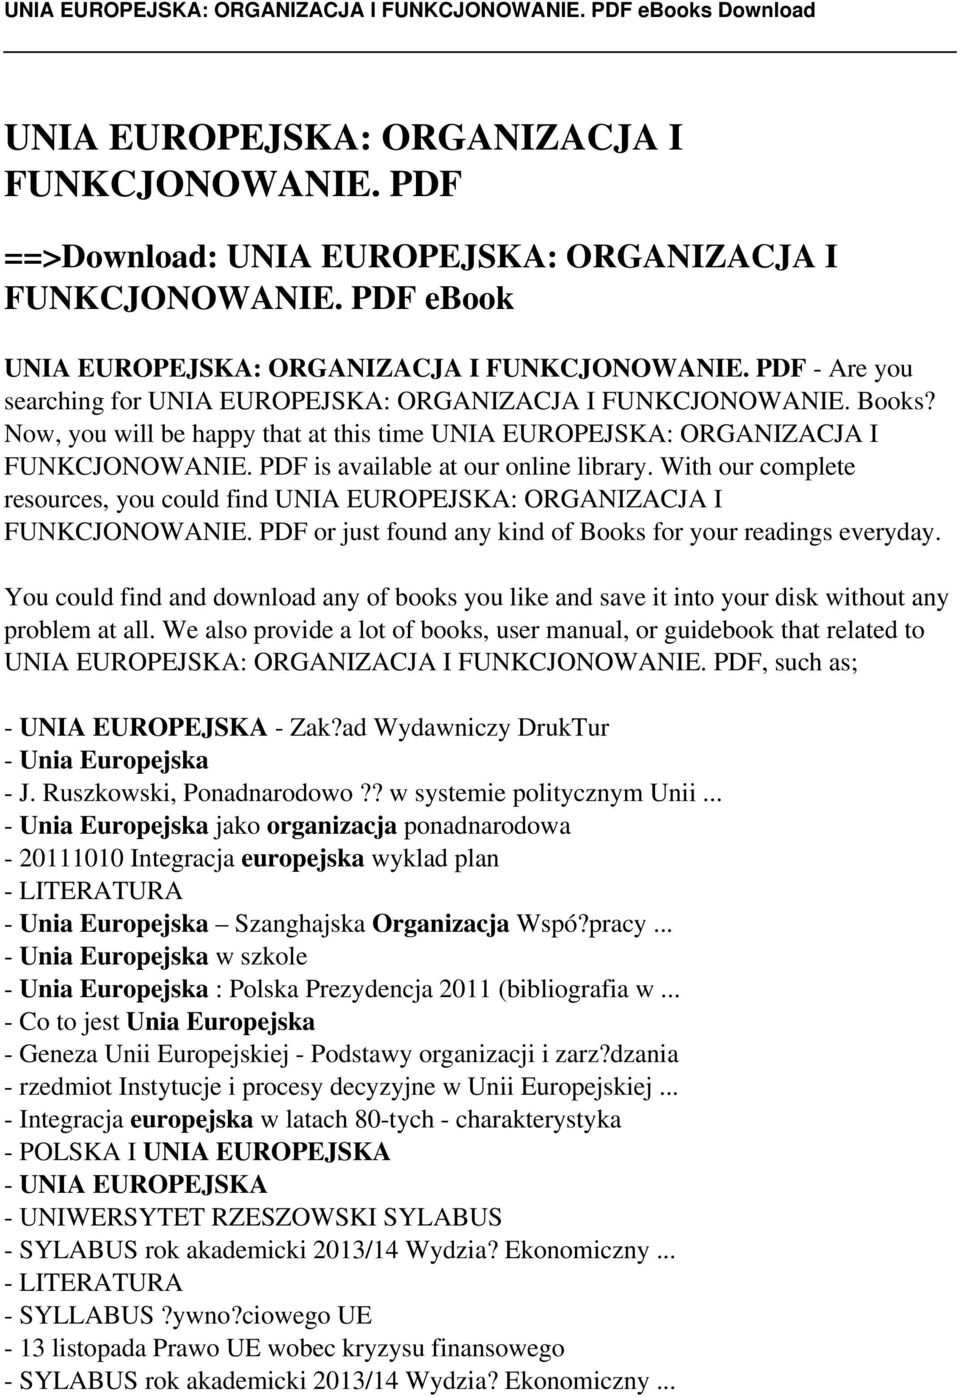 PDF is available at our online library. With our complete resources, you could find UNIA EUROPEJSKA: ORGANIZACJA I FUNKCJONOWANIE. PDF or just found any kind of Books for your readings everyday.